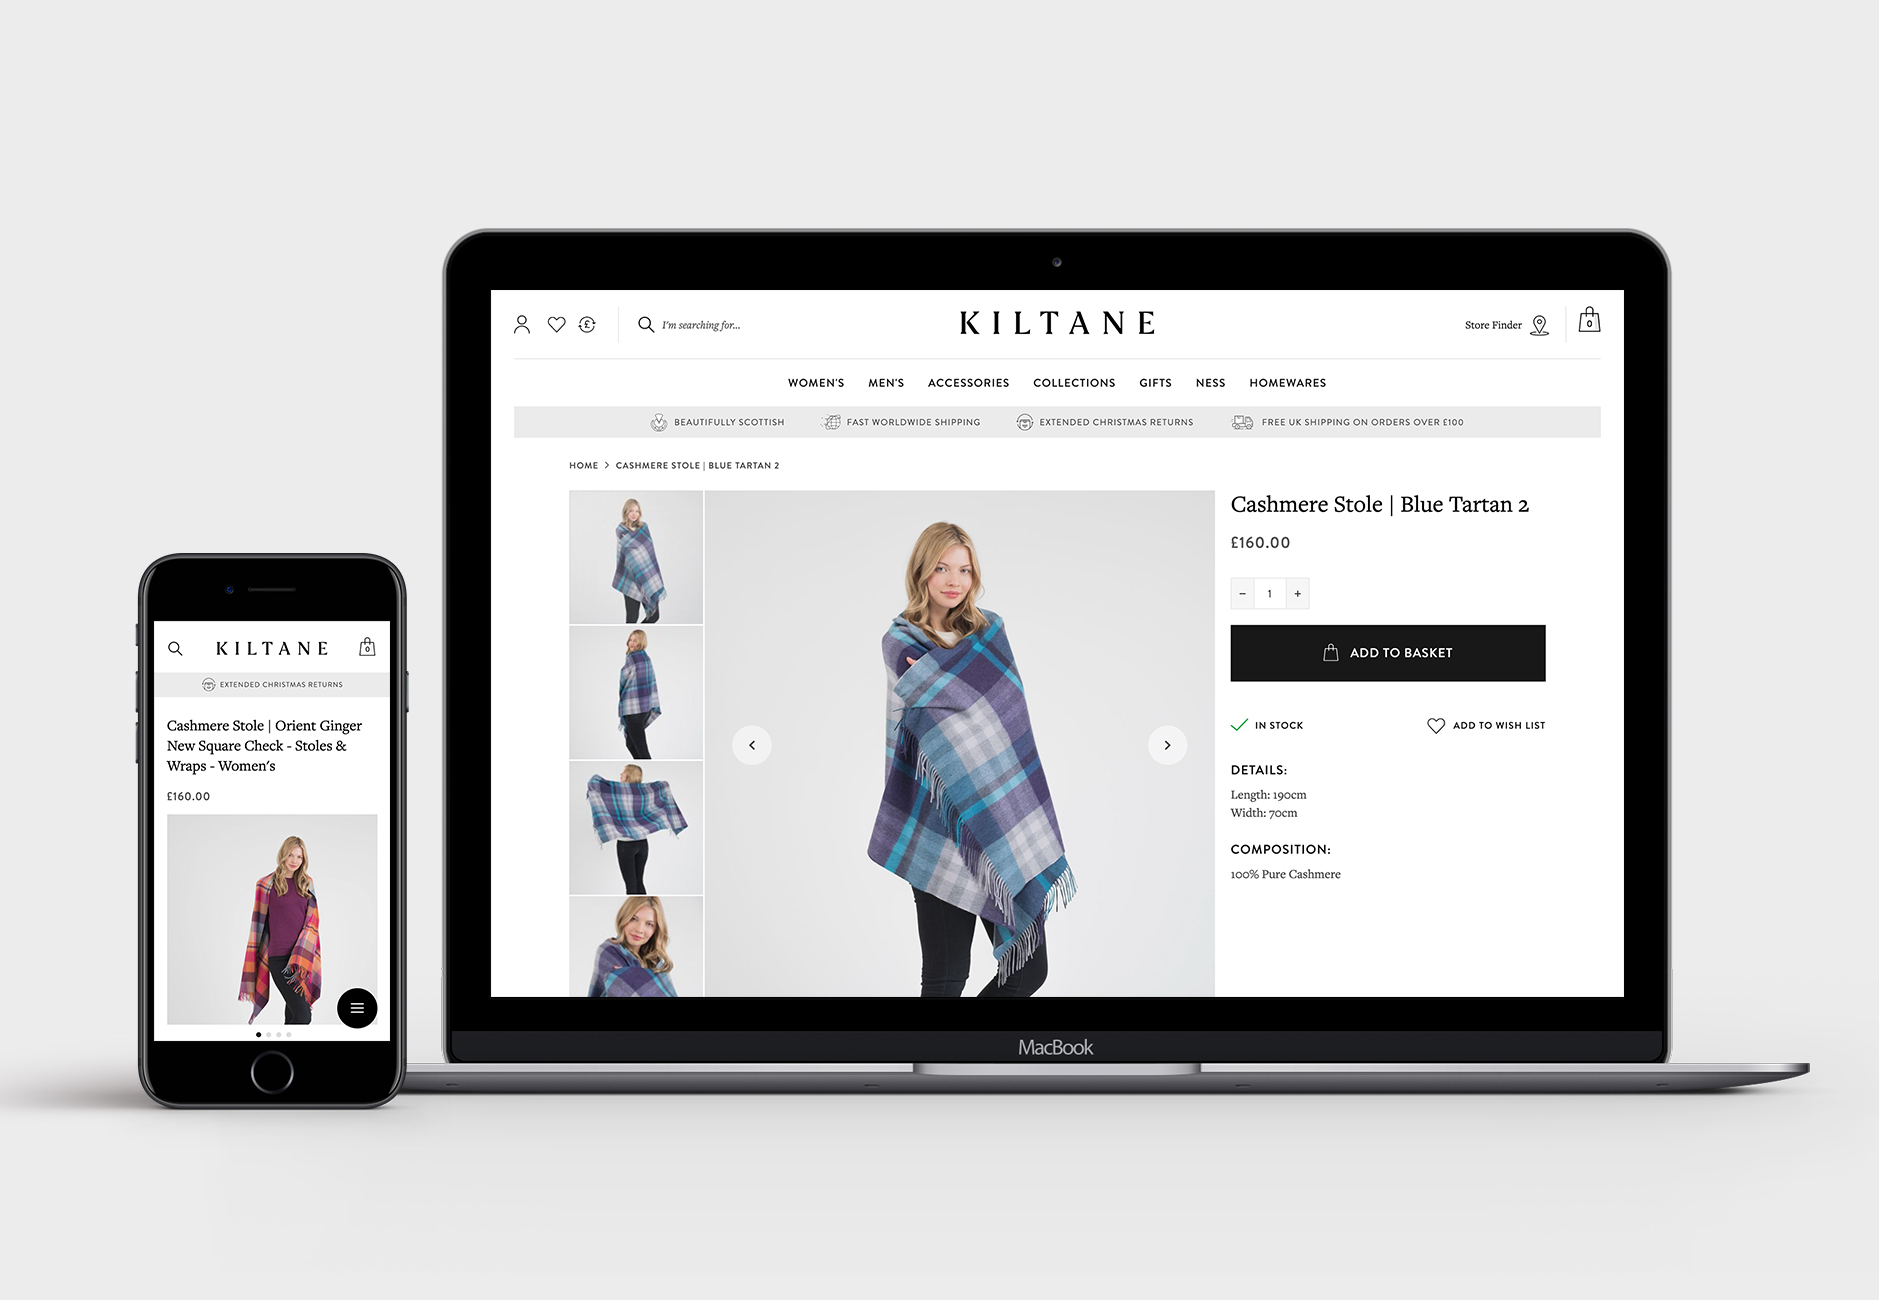 Kiltane Magento 2 Product Page Design